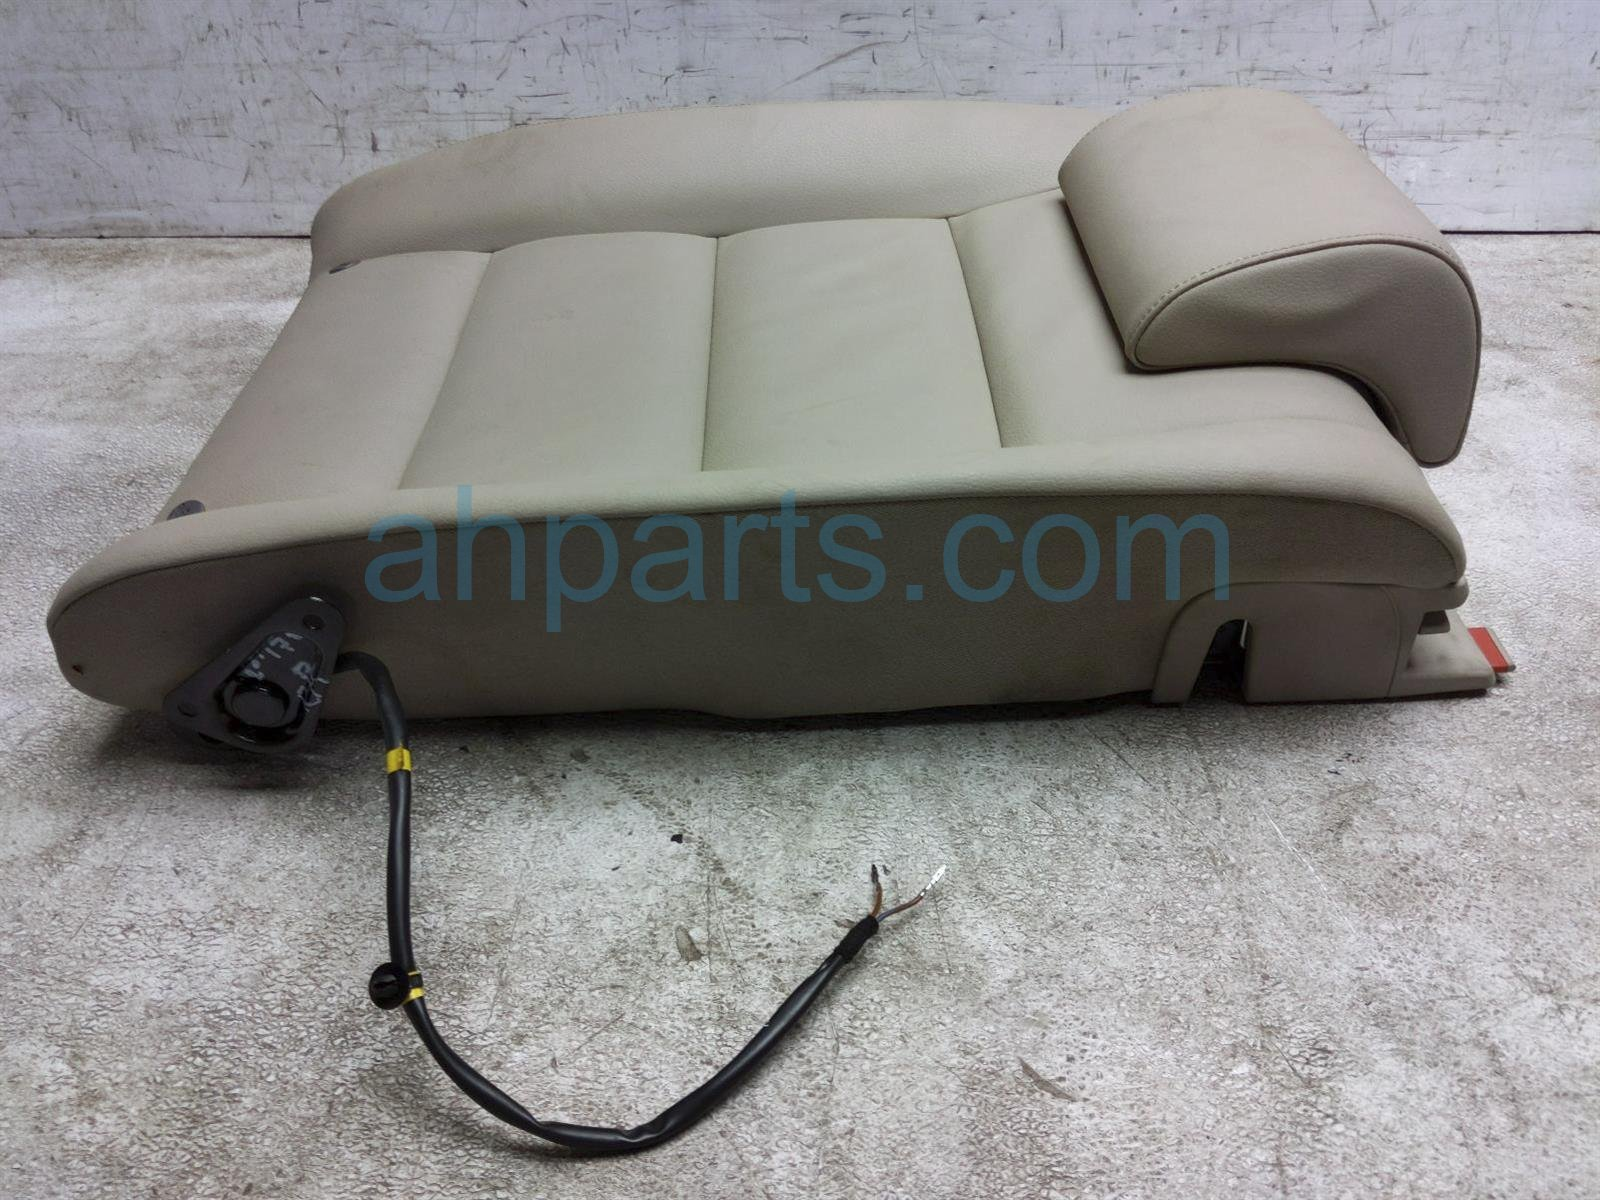 2011 Audi A6 Audi Back Seat (2nd Row) Rear Driver Upper Cushion   Tan Leather 4F0 885 805 AQ VTS Replacement